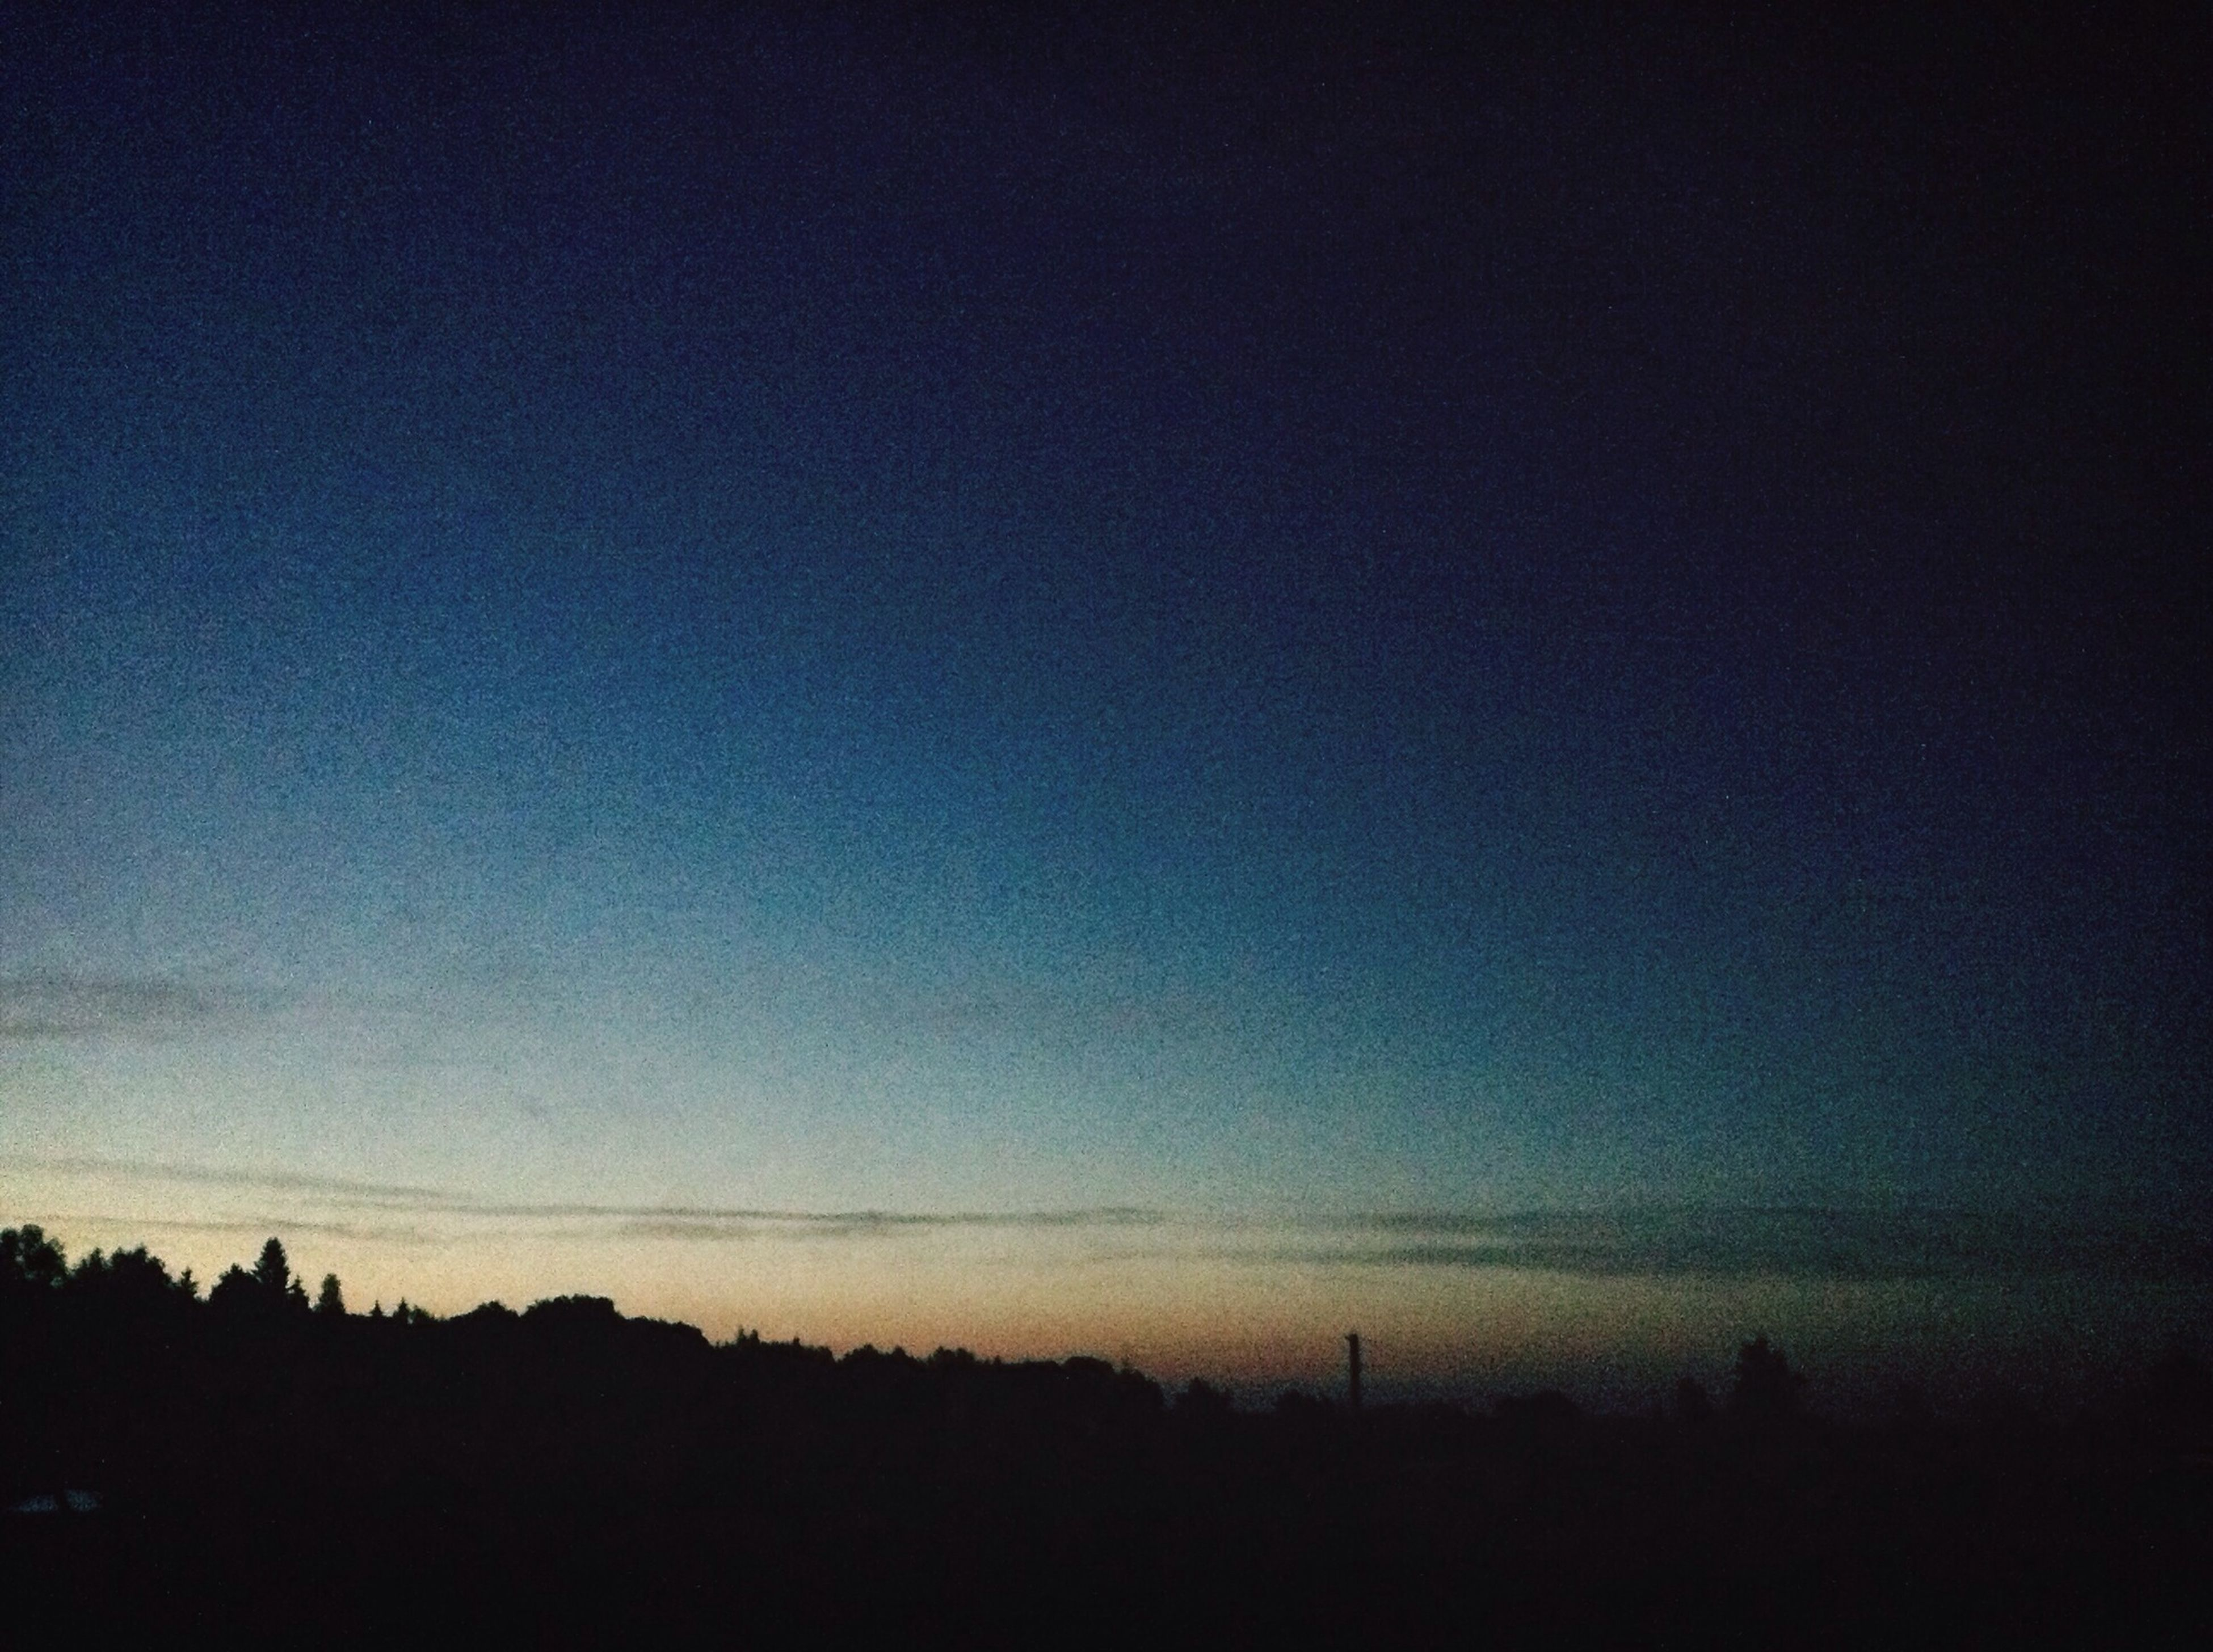 silhouette, tranquility, tranquil scene, scenics, copy space, beauty in nature, tree, sunset, landscape, nature, sky, dusk, dark, clear sky, blue, idyllic, outdoors, outline, no people, power line